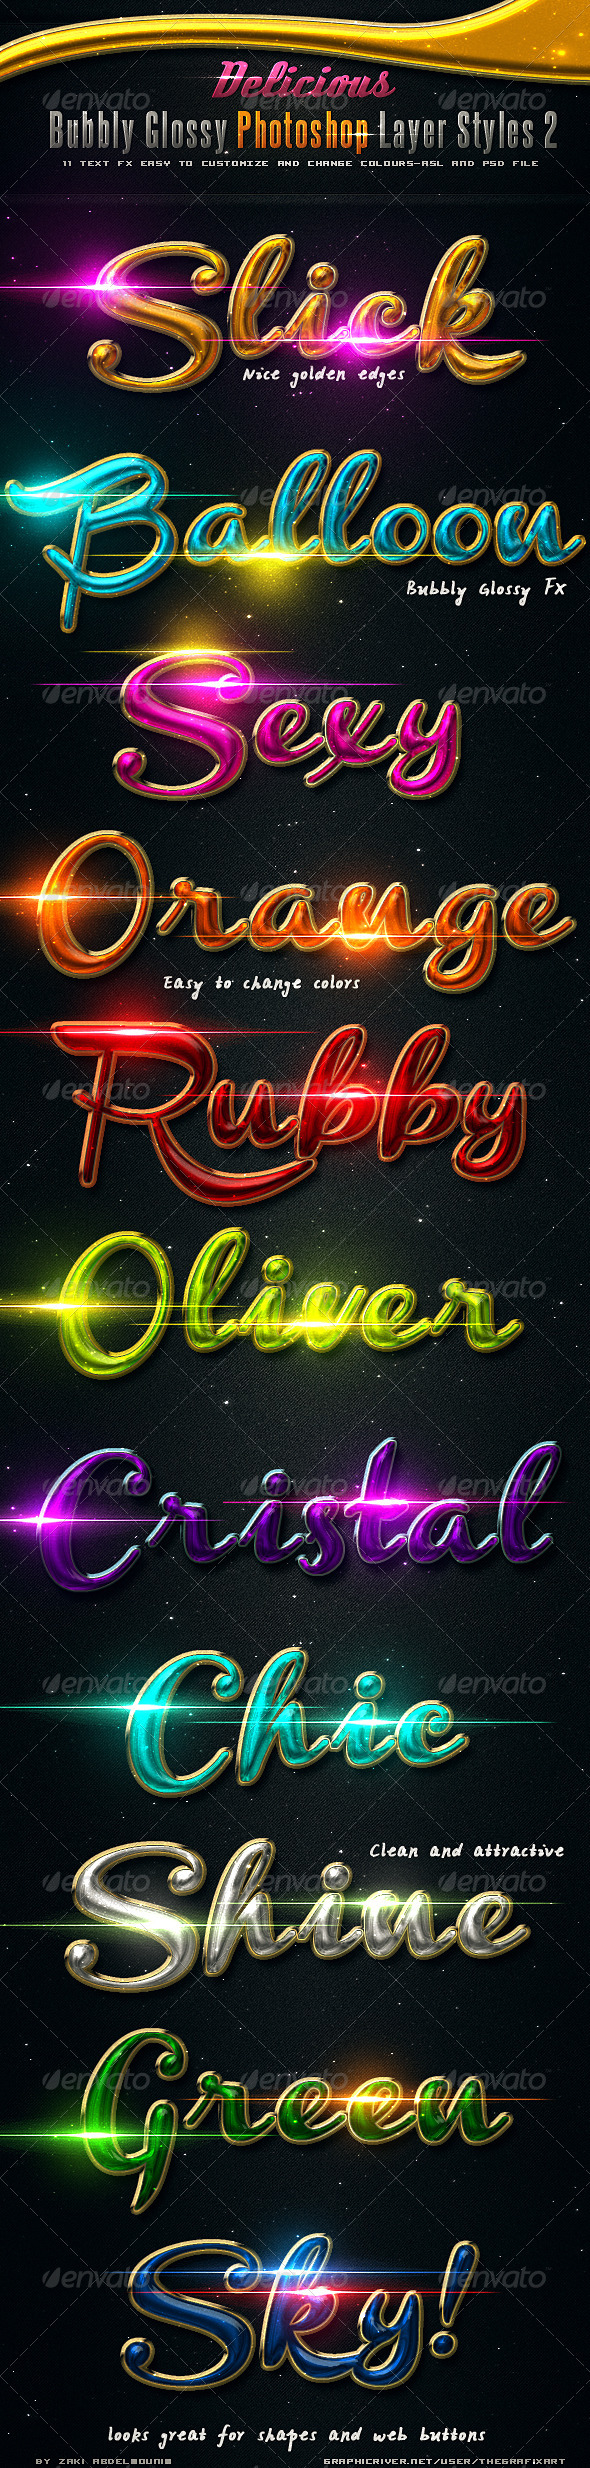 Delicious Bubbly Photoshop Styles 2 - Text Effects Styles